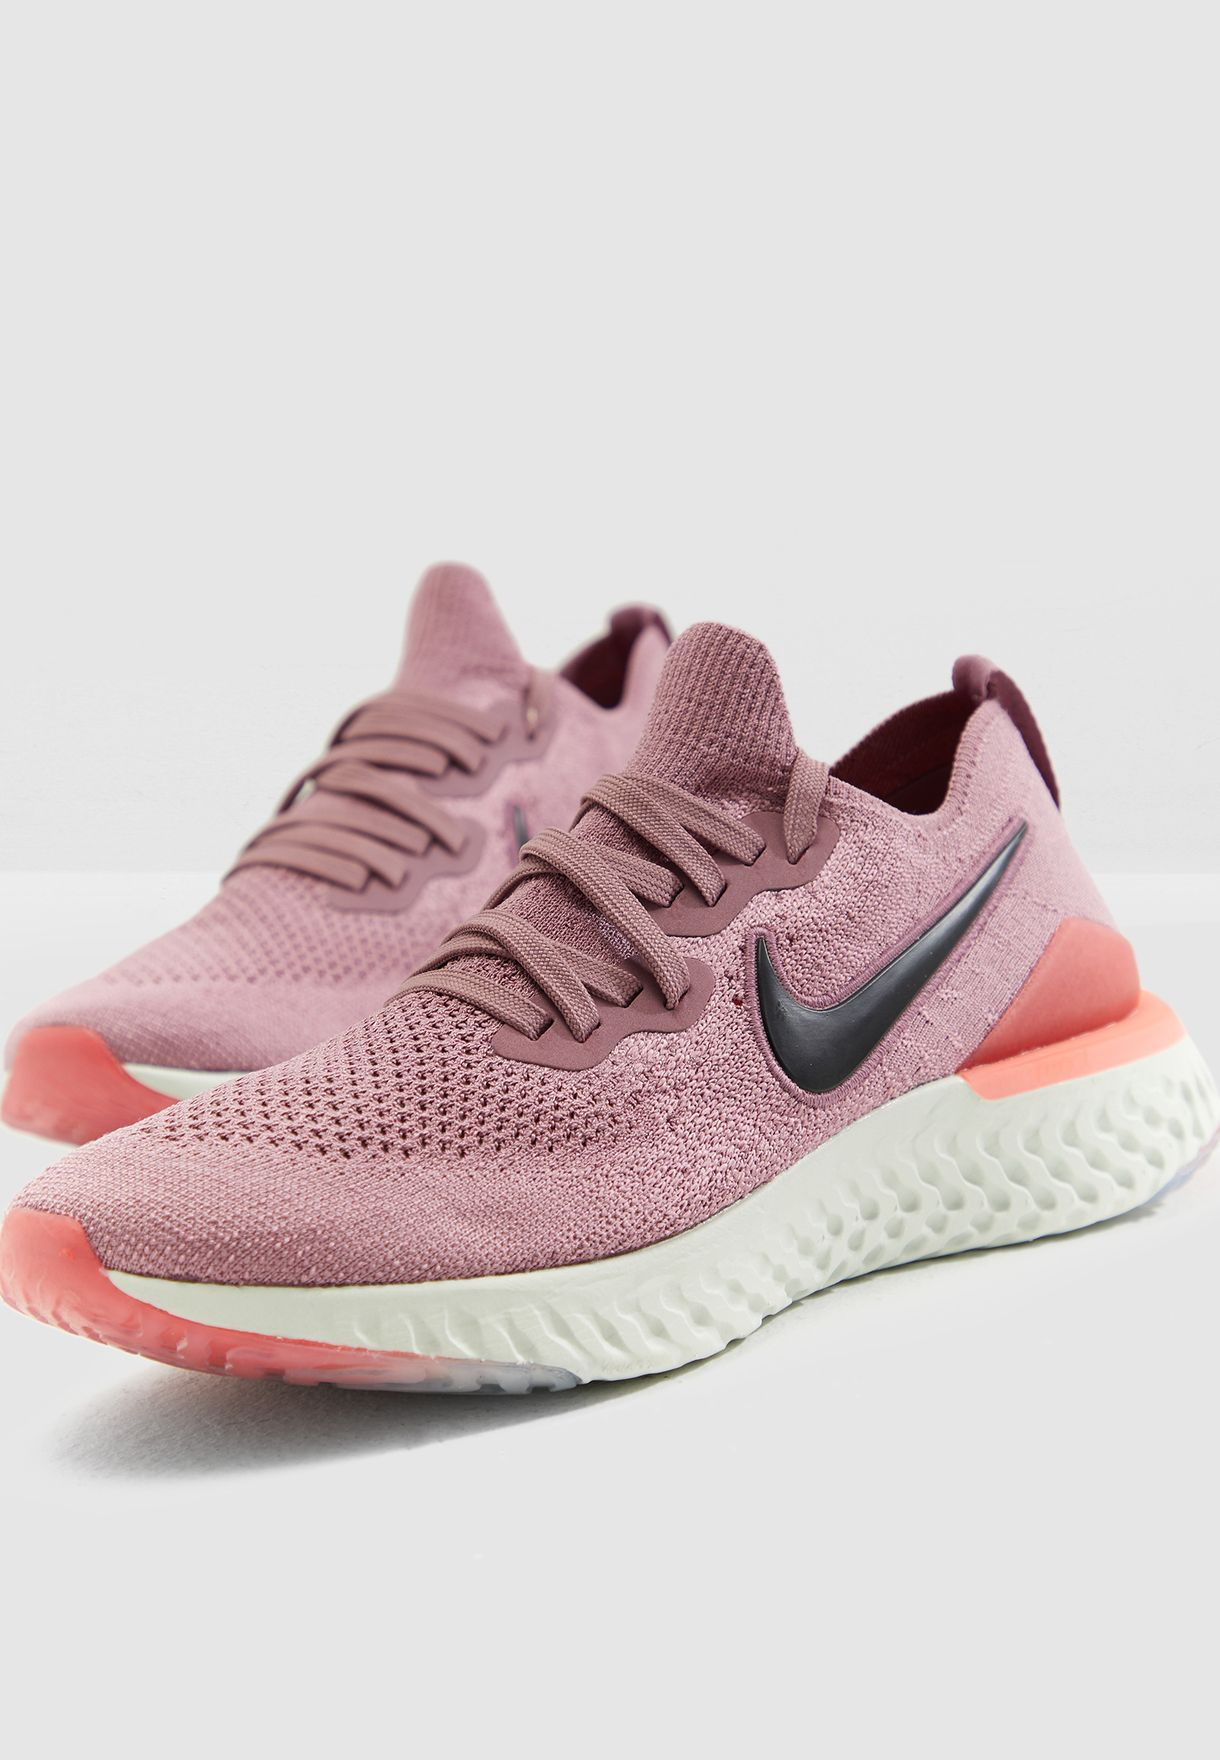 a6c0df89629e Epic React Flyknit 2